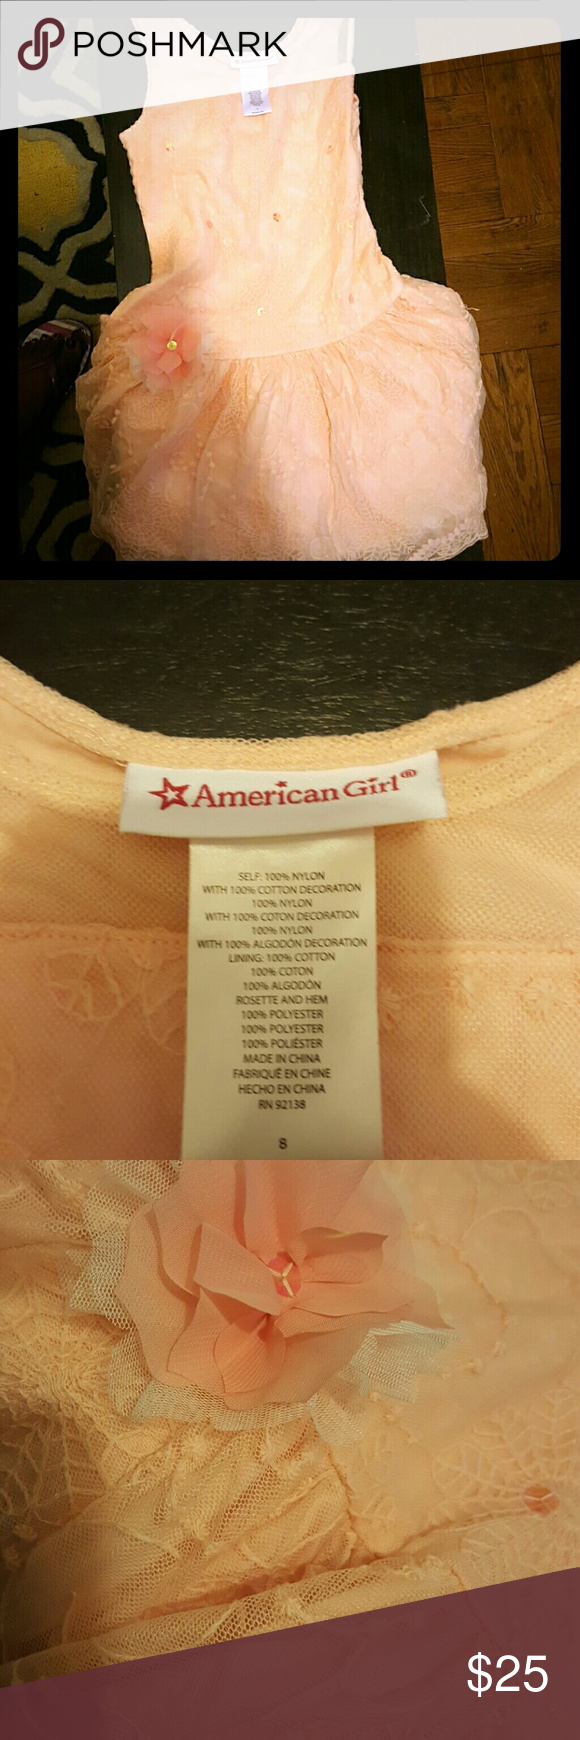 American Girl Size Small Peach Dress w Flower Peach A line dress with mesh overlay, sequins, flower, size small.  Beautiful - Worn once American Girl Dresses Formal